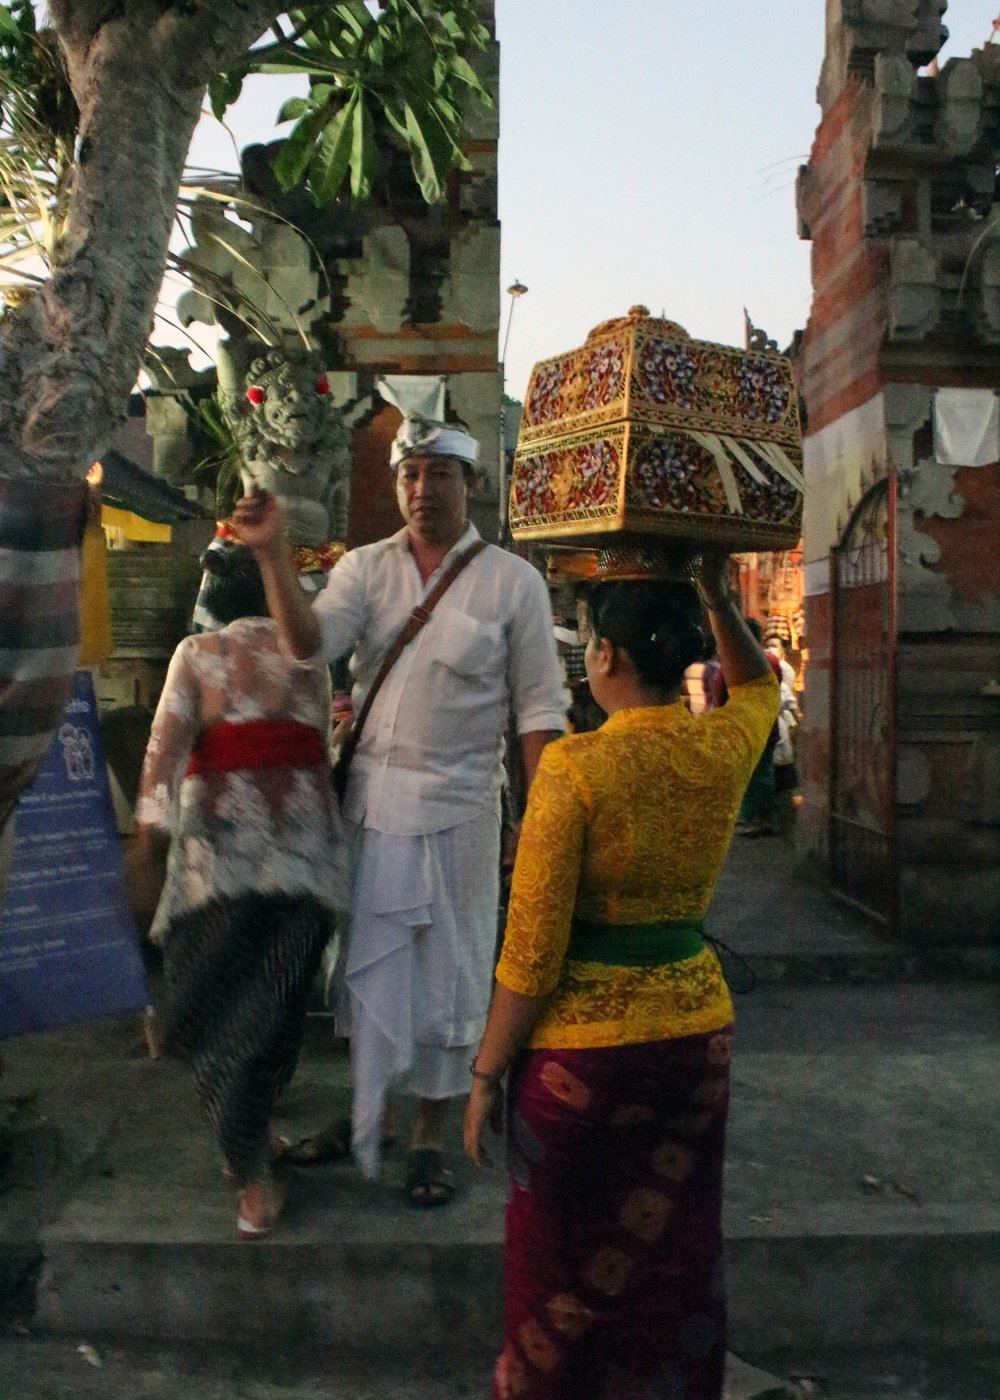 Traditional Balinese ceremony